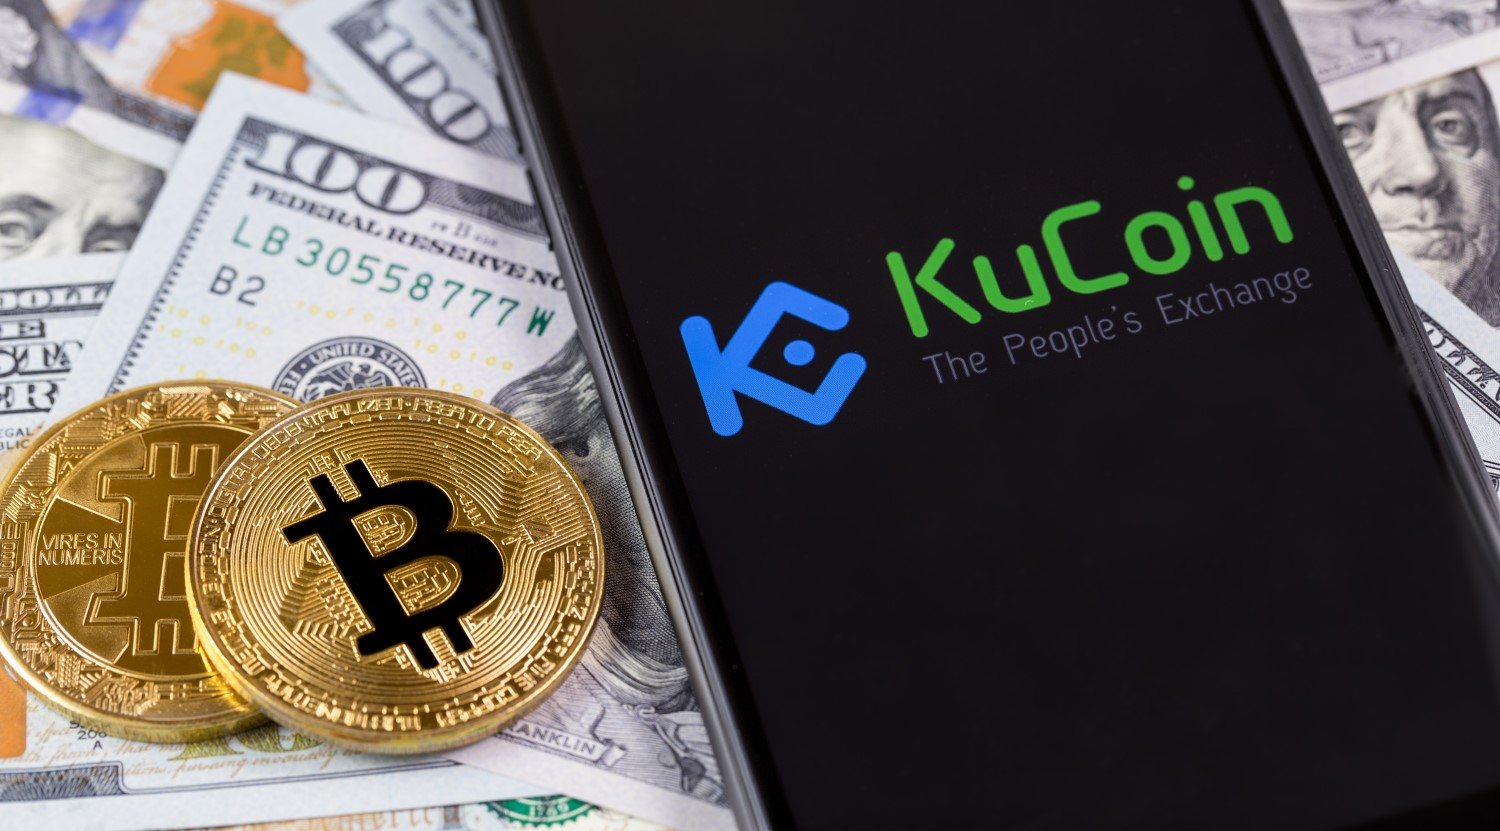 KuCoin encourages greener crypto mining with proof-of-work pool